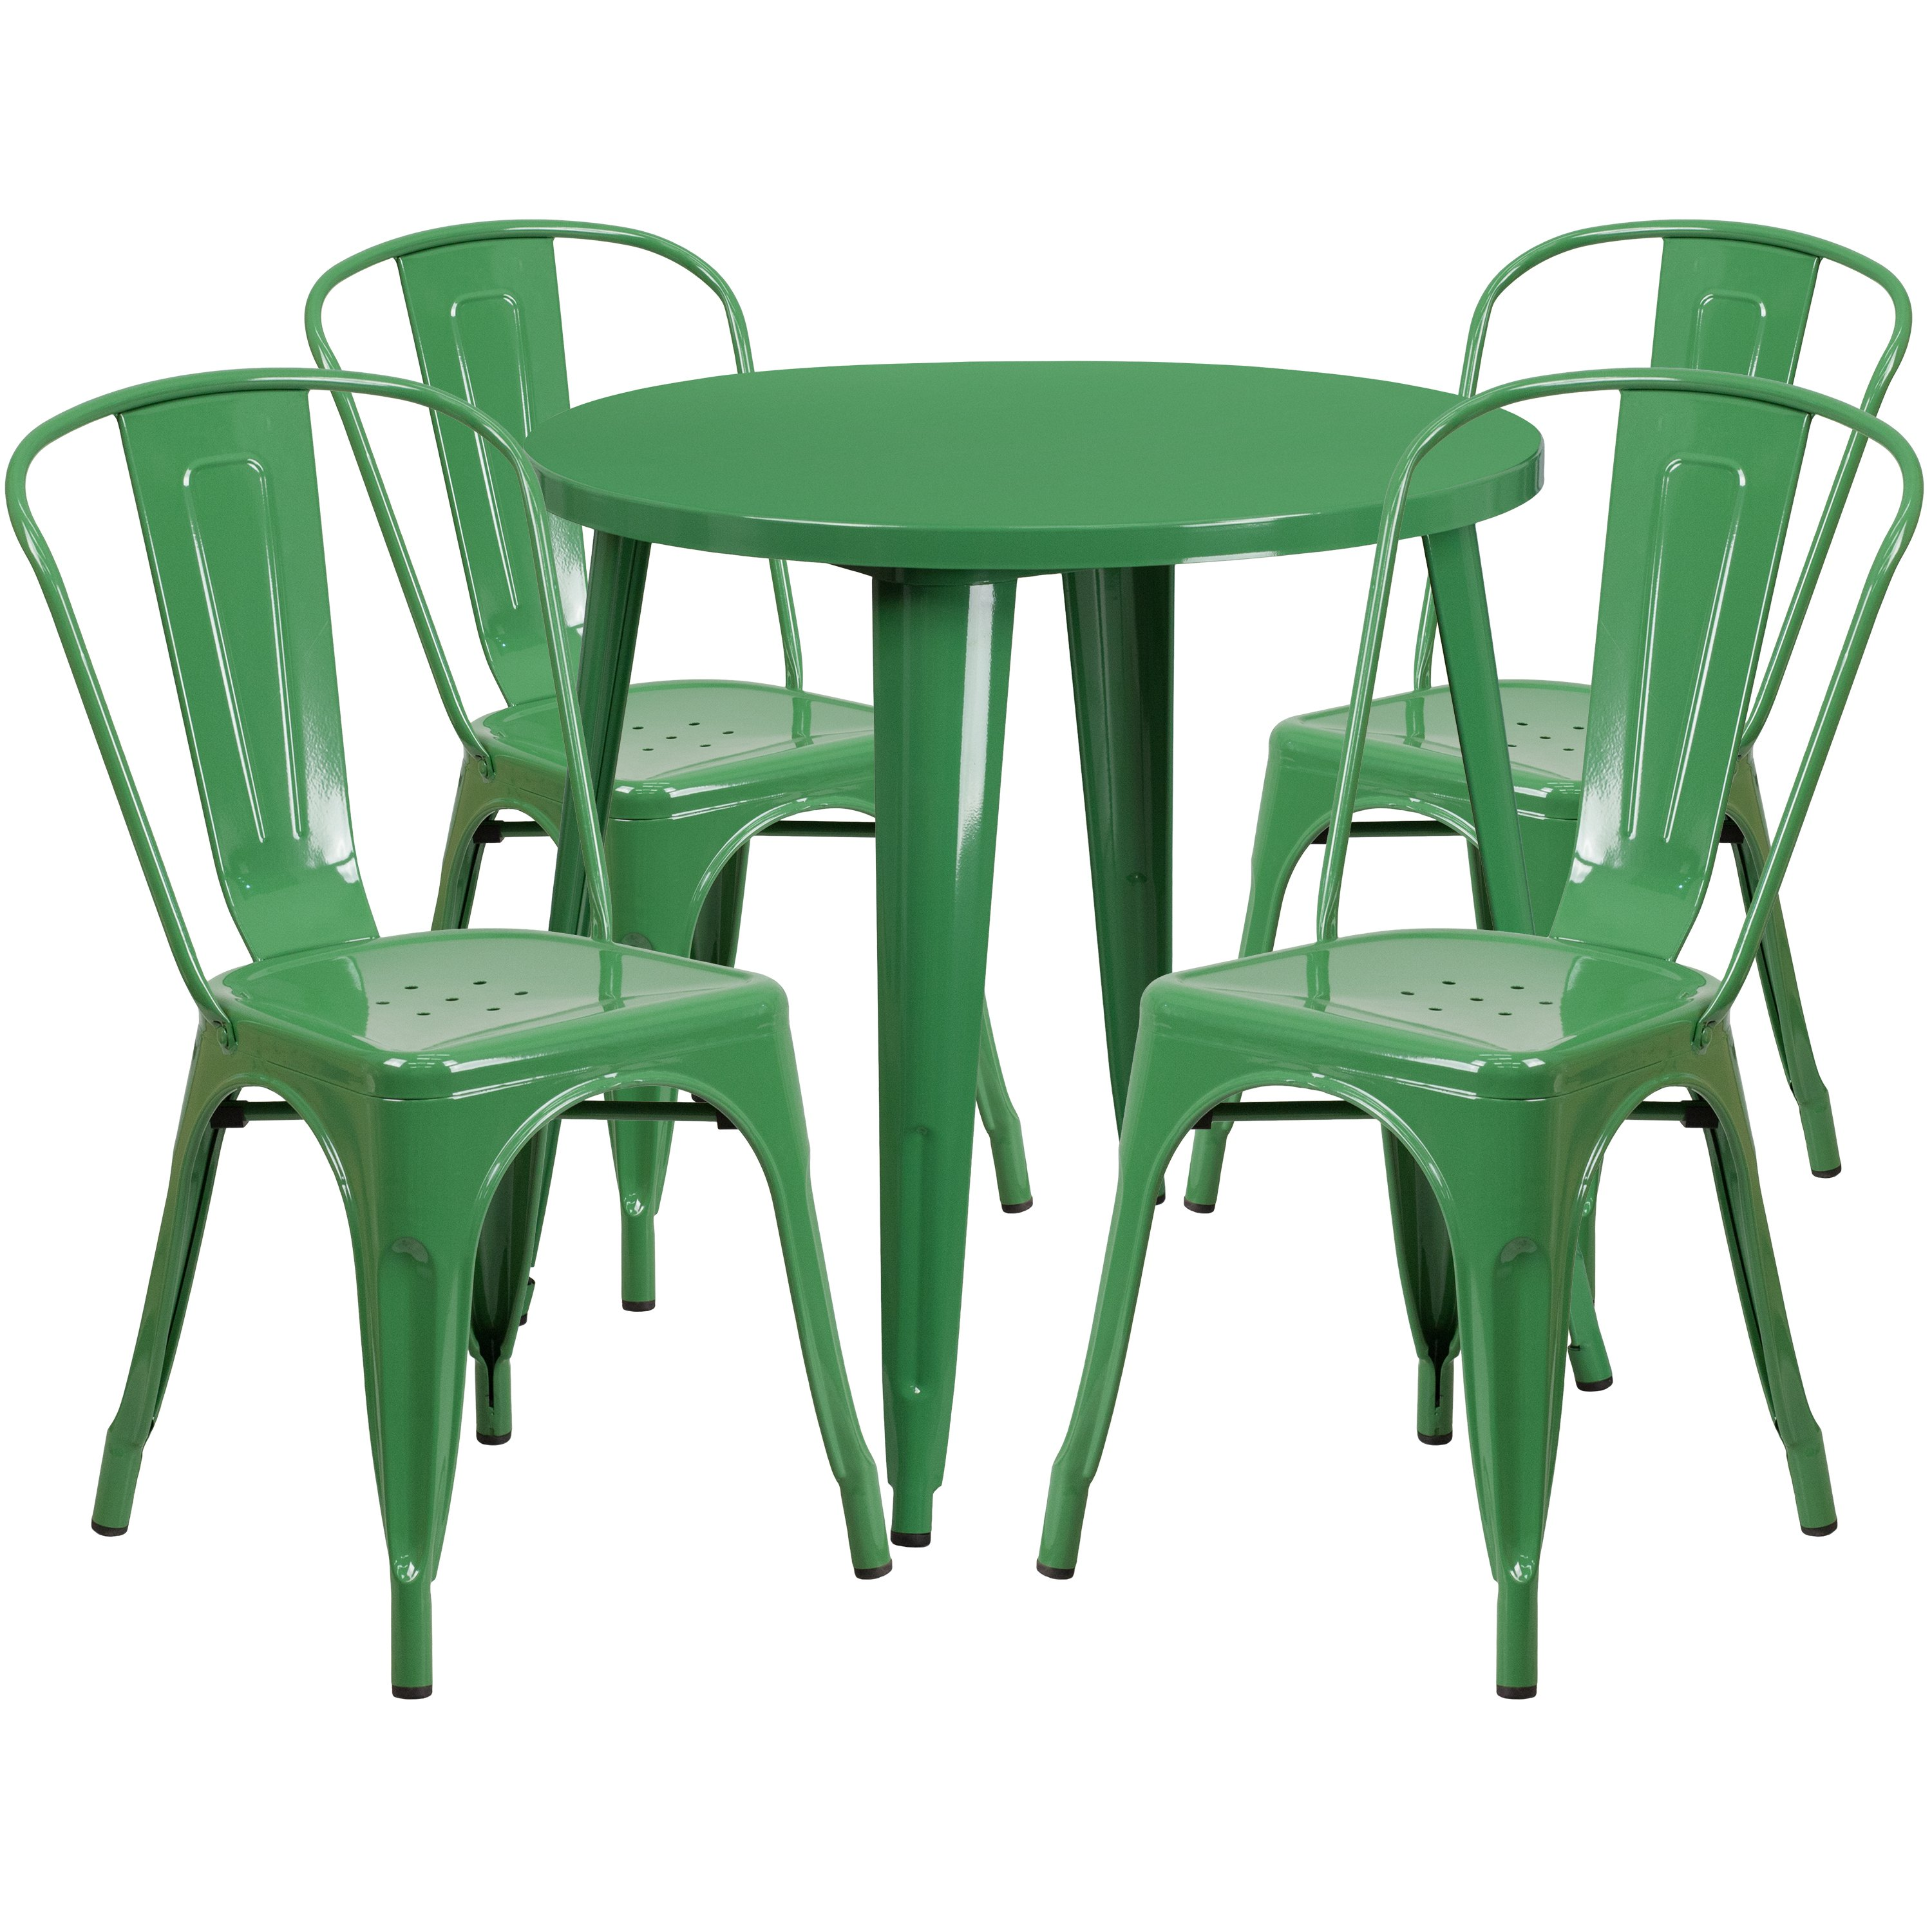 Green Metal Bistro Chairs Toddler Bean Bag 30 Round Indoor Outdoor Table Set With 4 Cafe